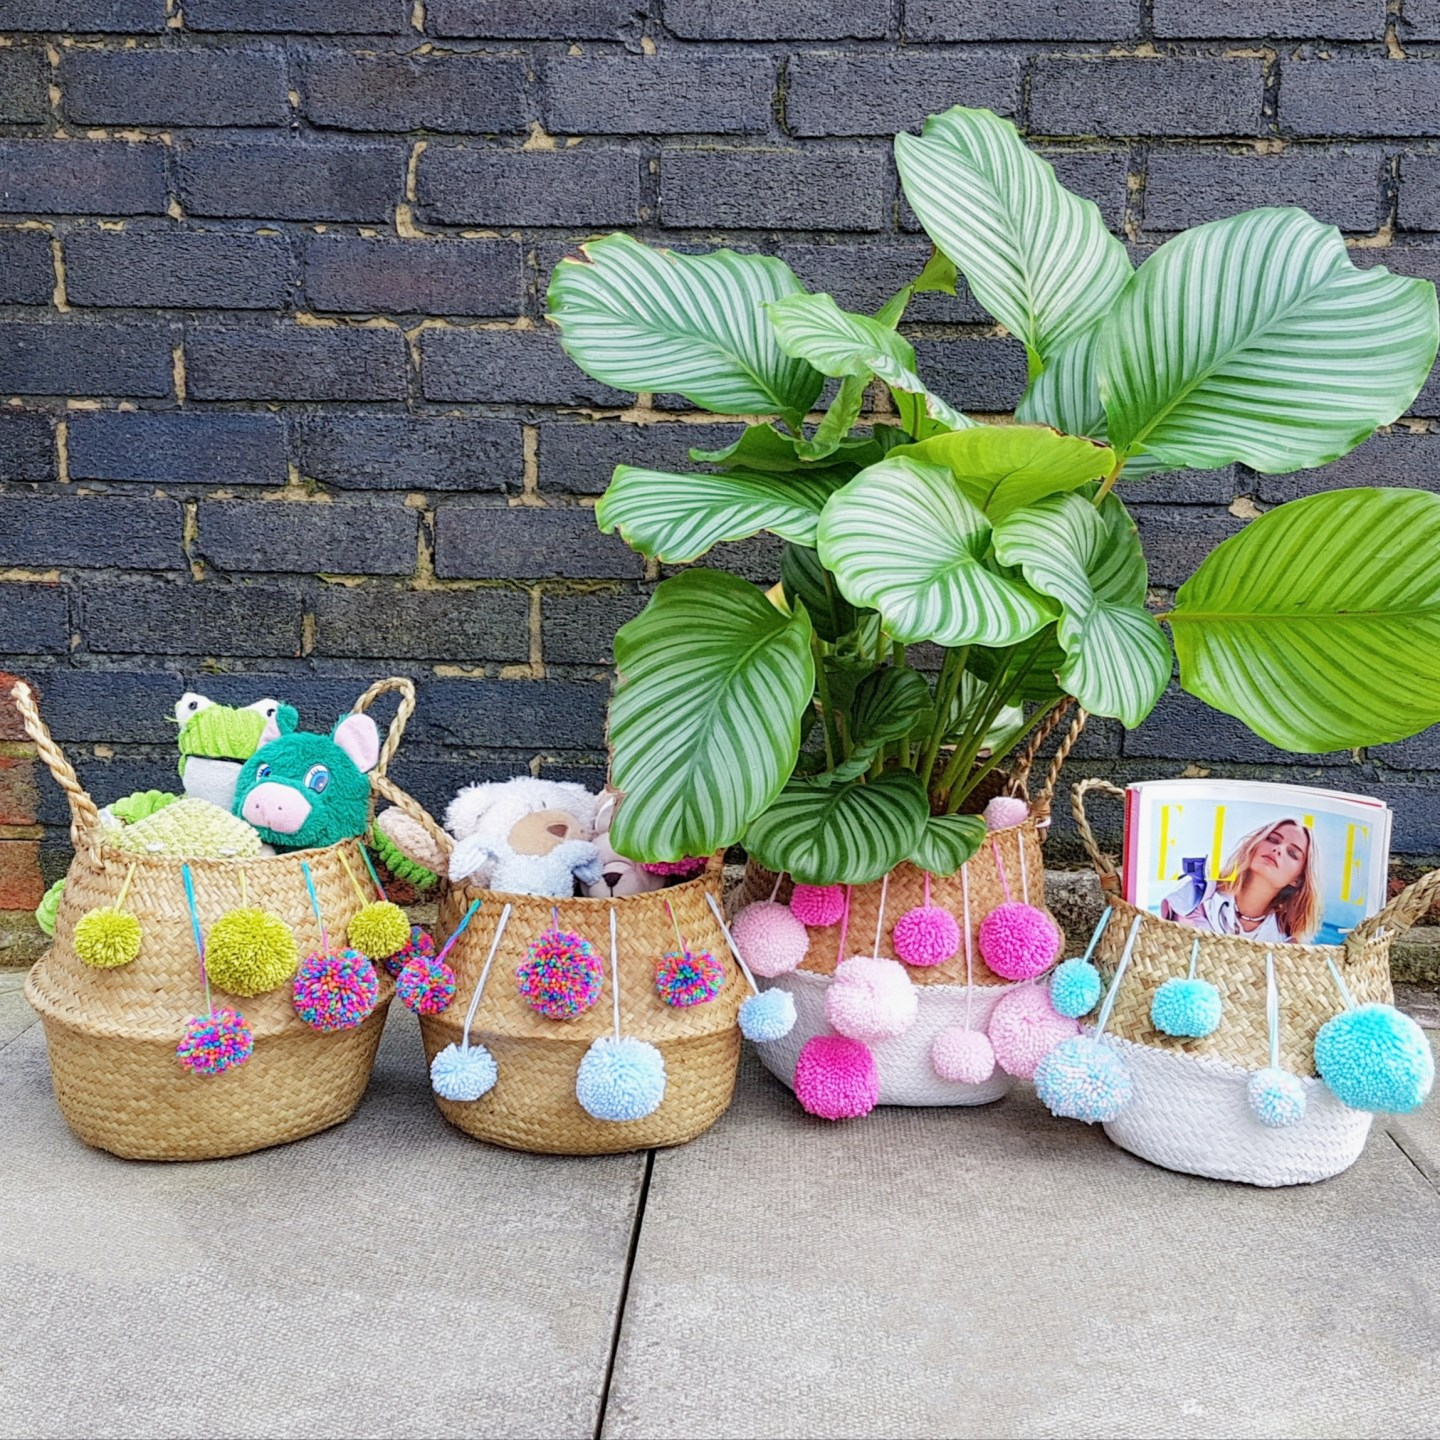 DIY Pom Pom Wicker Basket